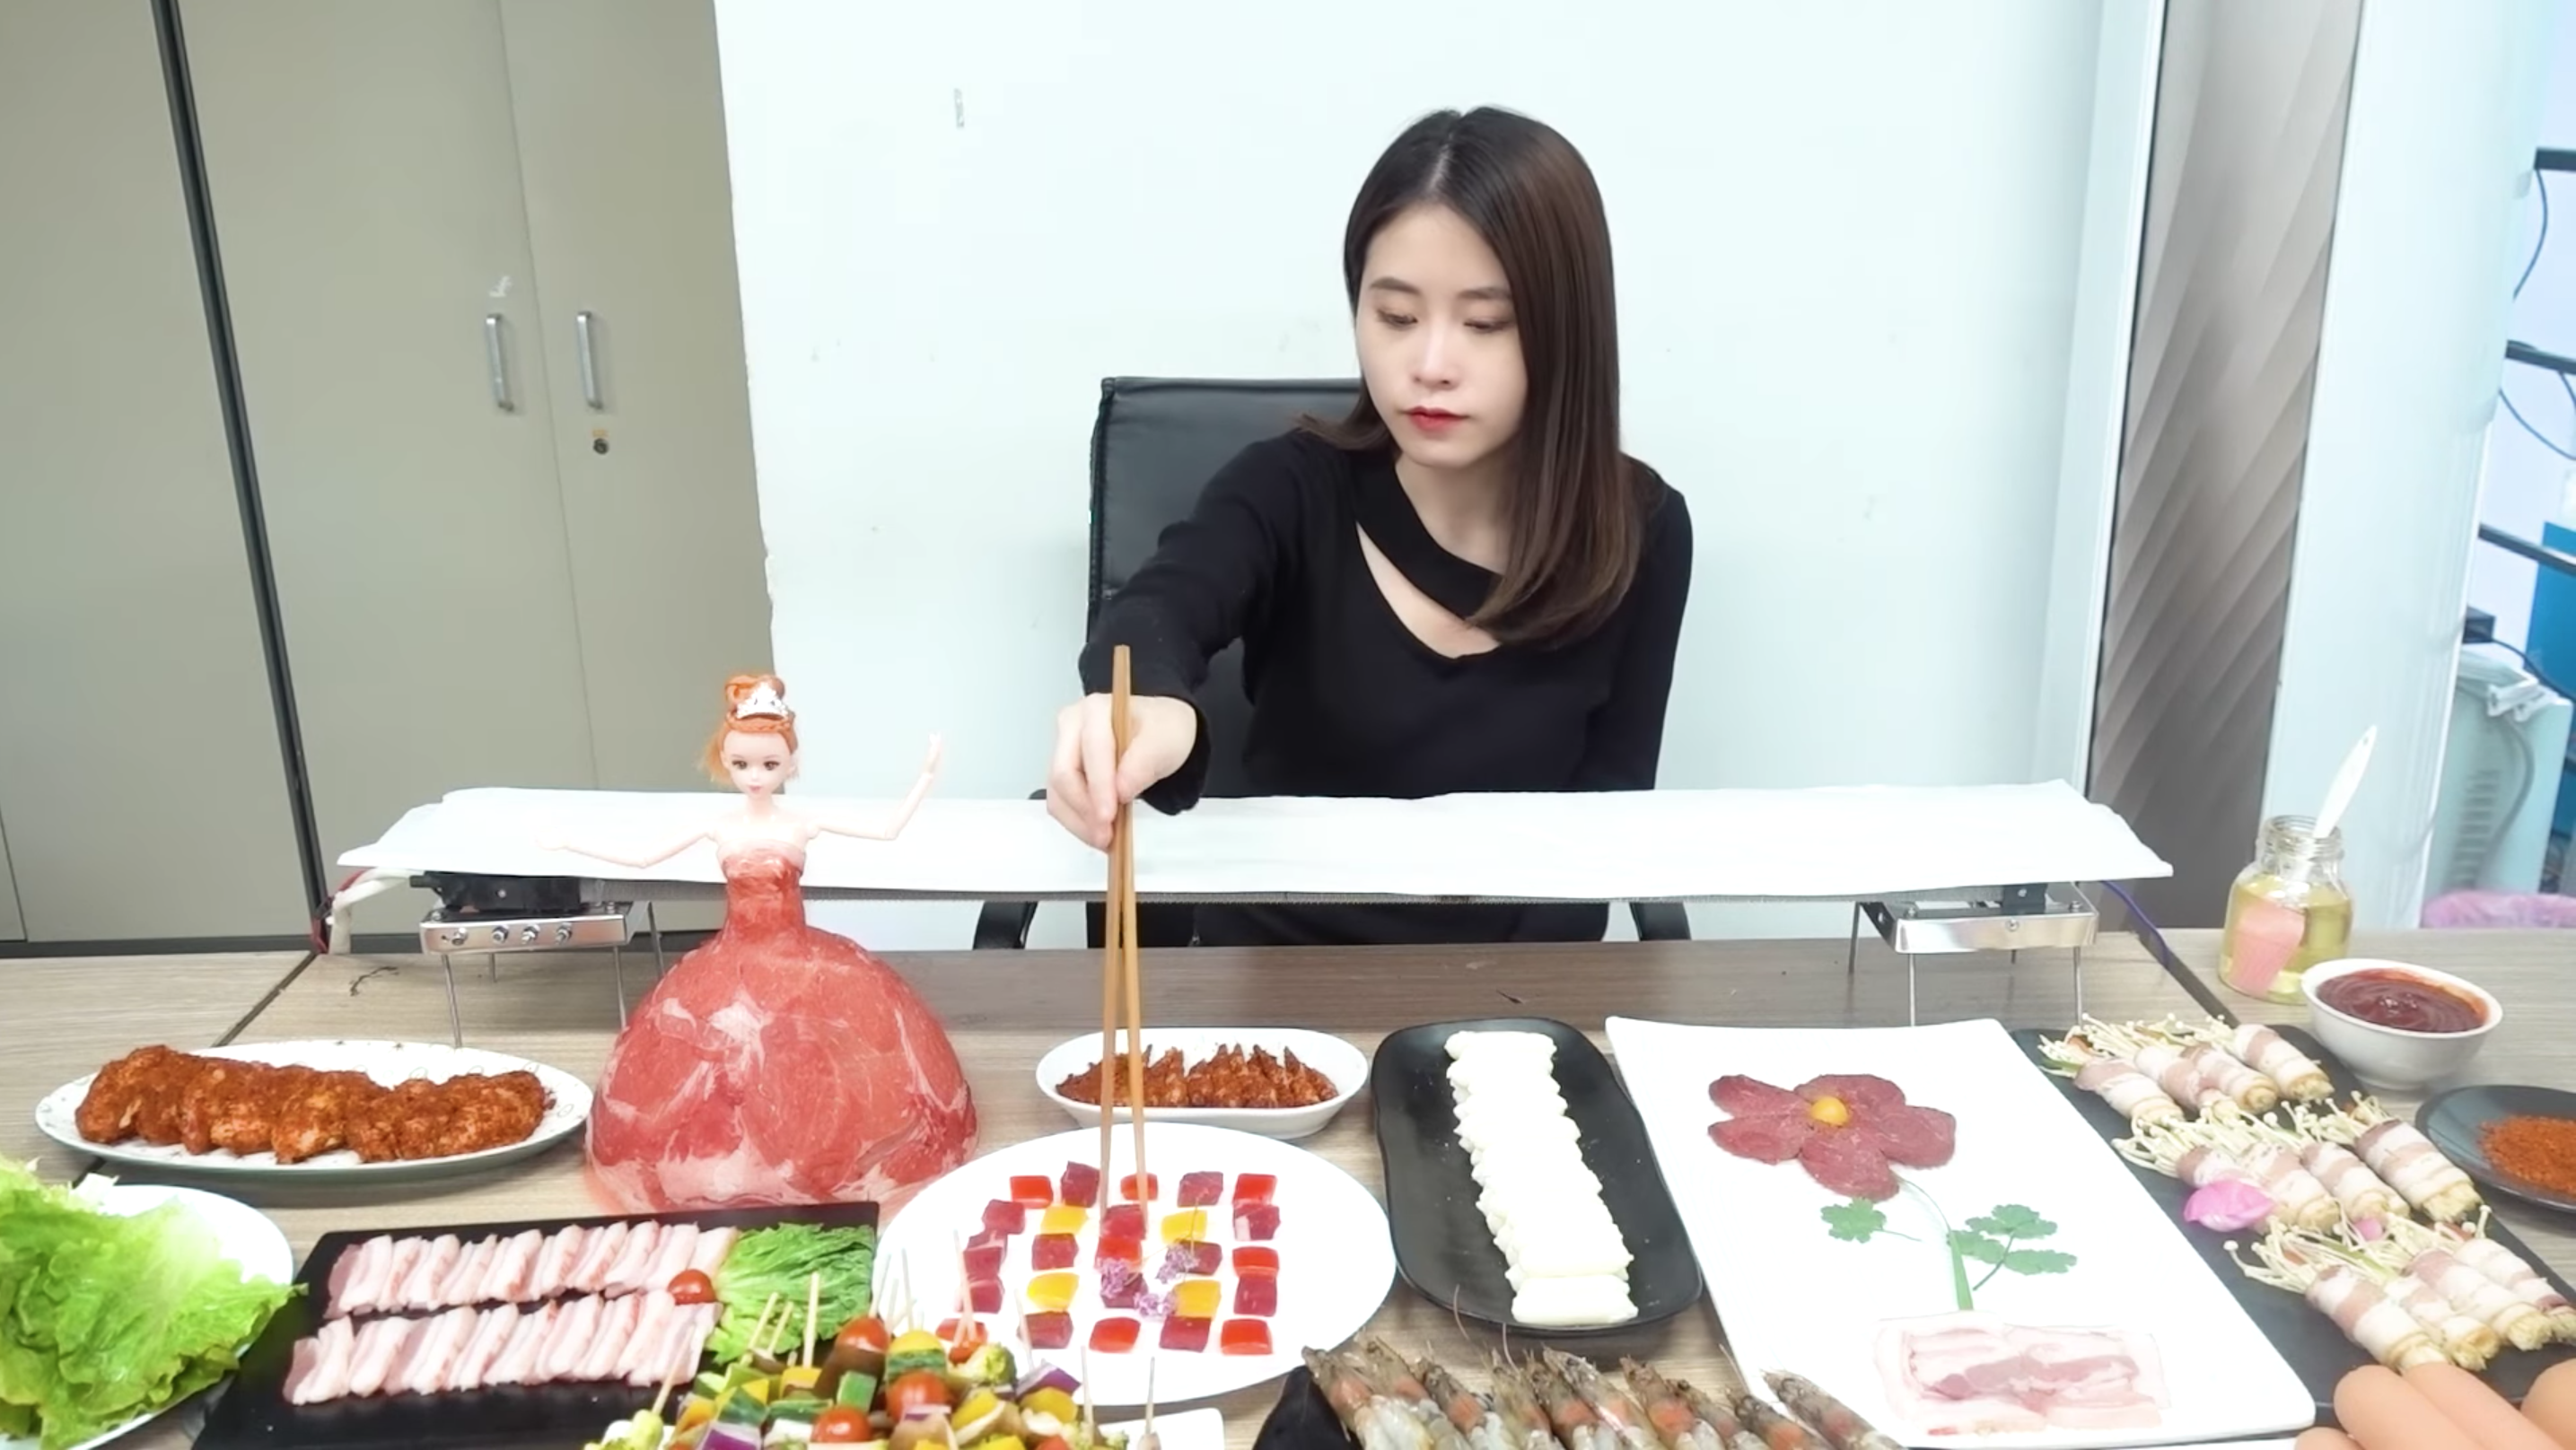 Ms. Yeah uses an air conditioner as a makeshift barbecue (credit: YouTube)